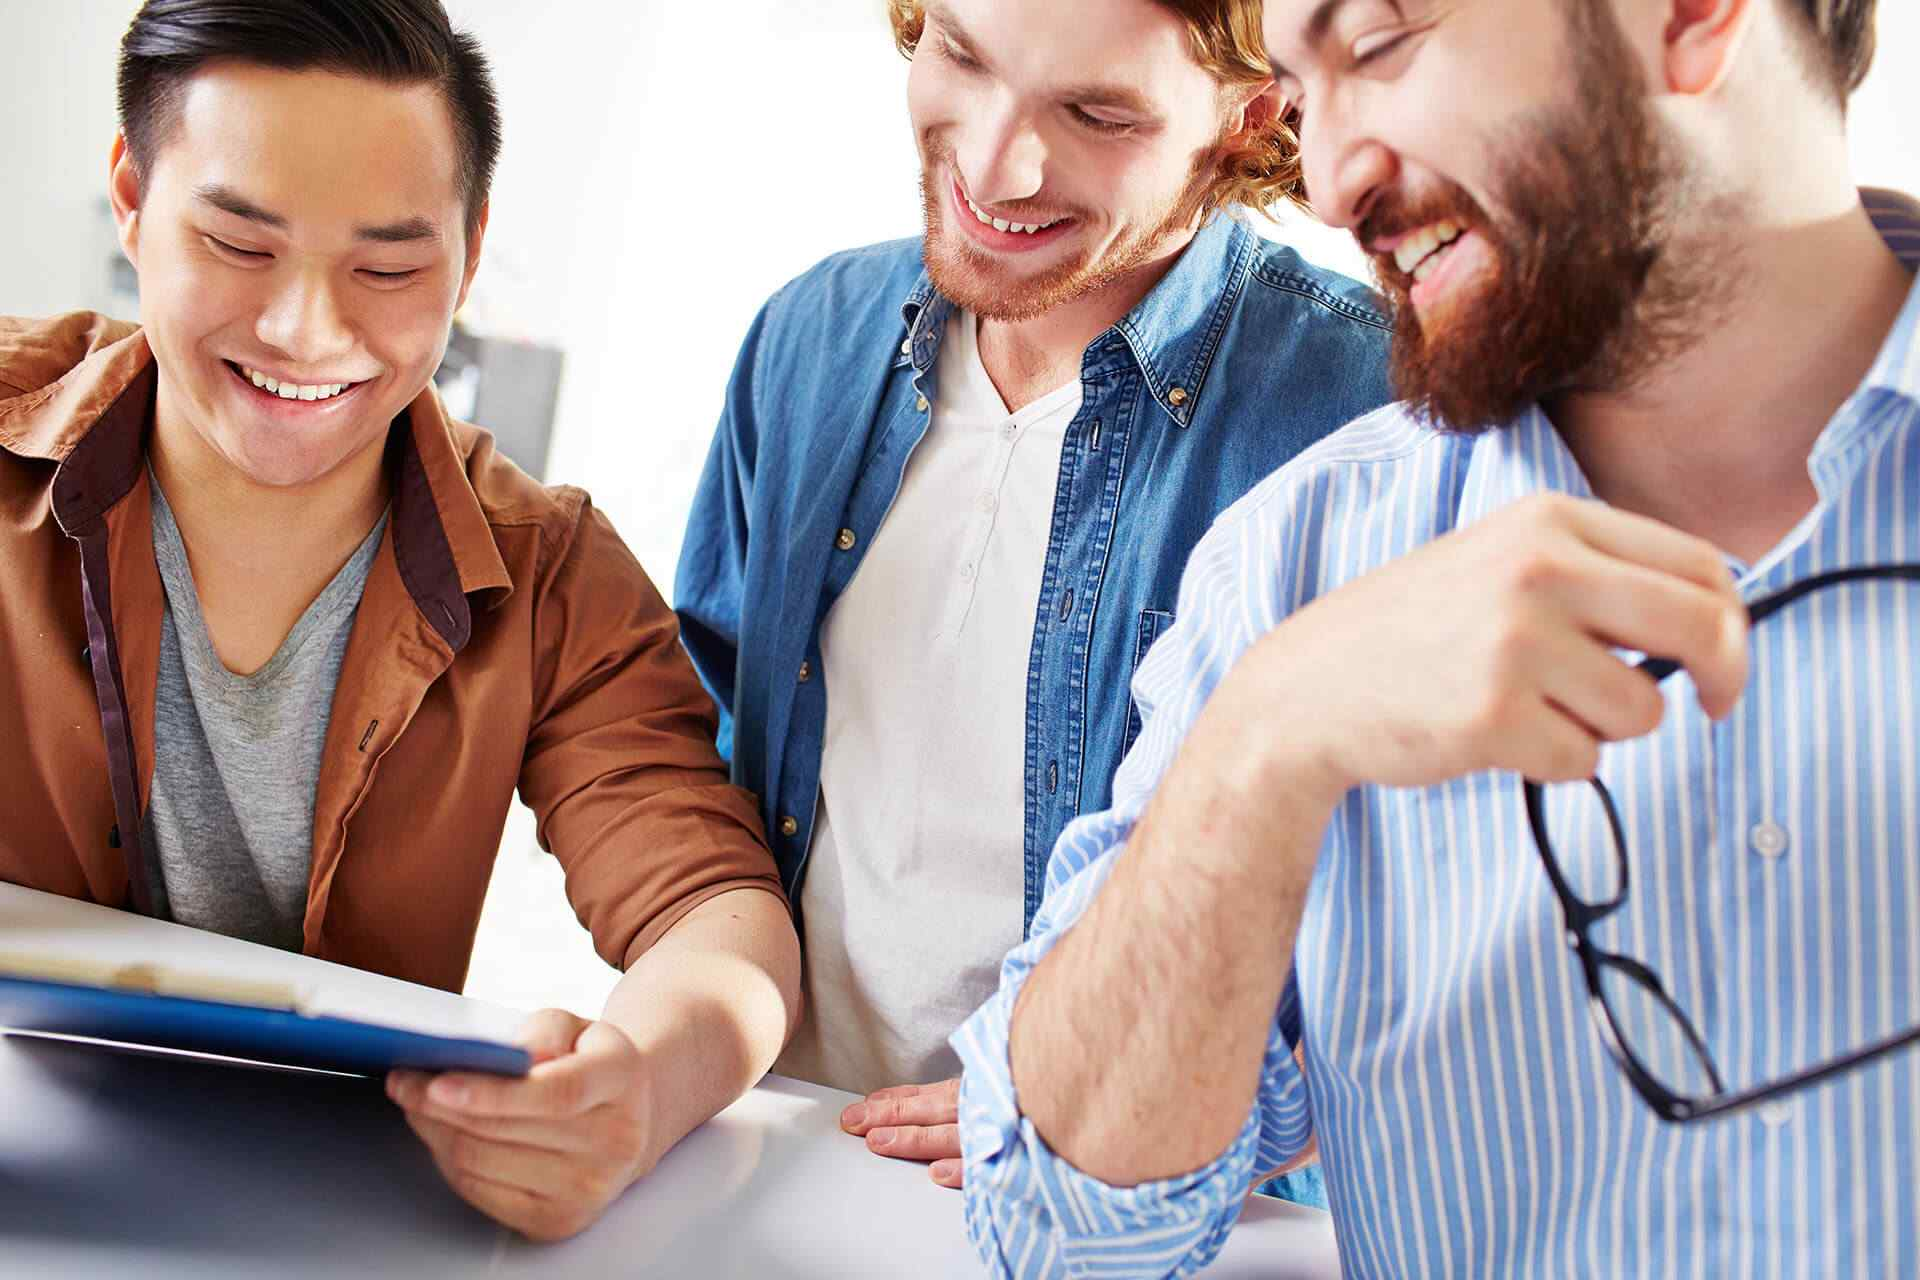 millenial men smiling at a document while in office space